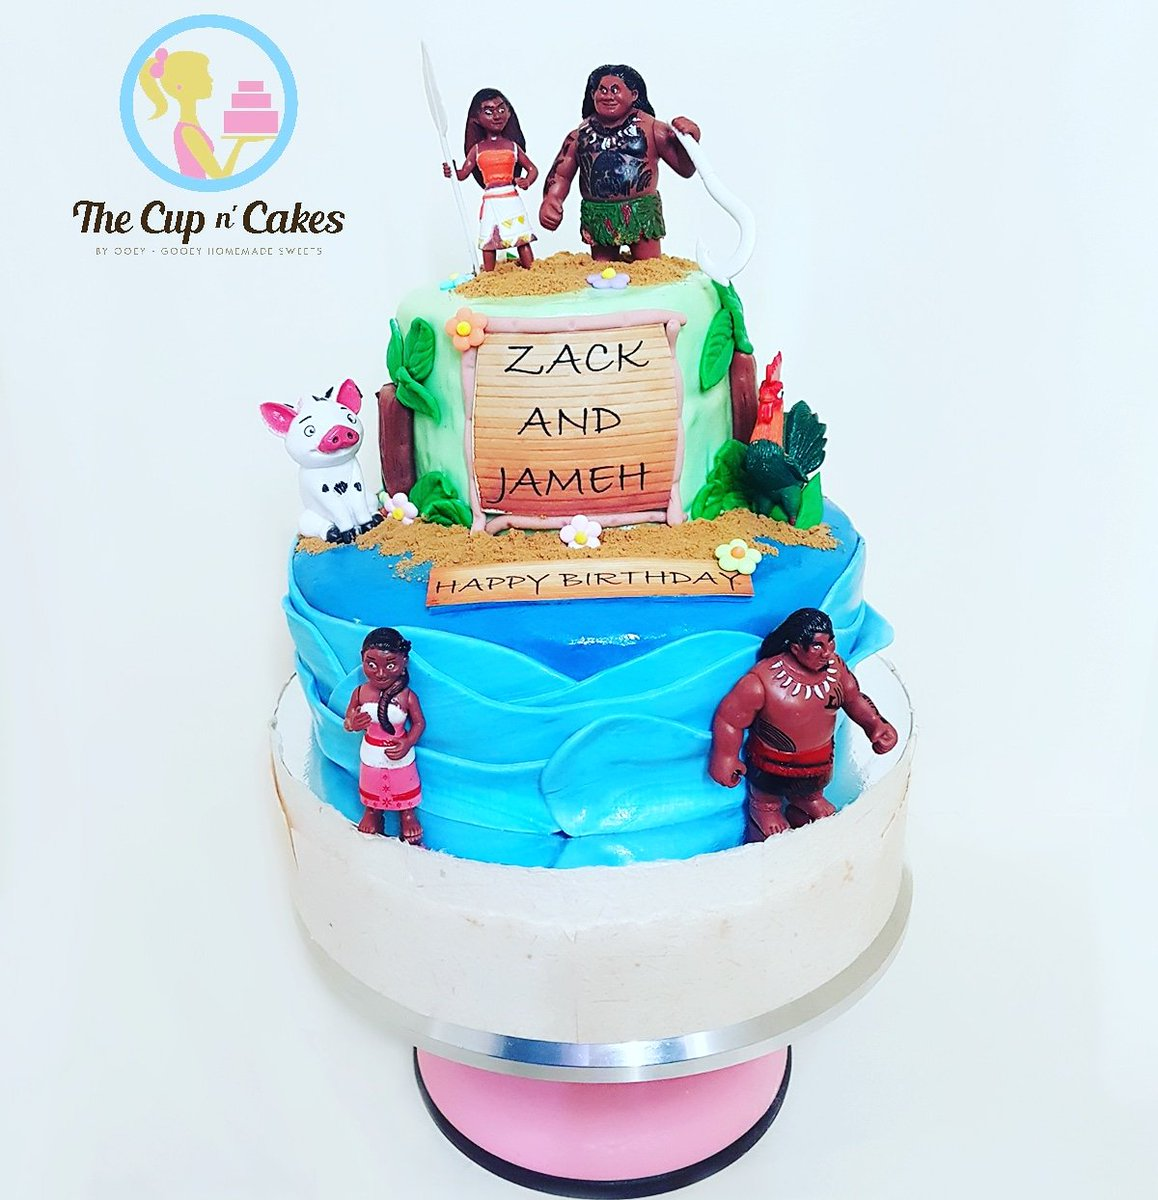 The Cup N Cakes On Twitter Moana Themed Birthday Cake For Zack